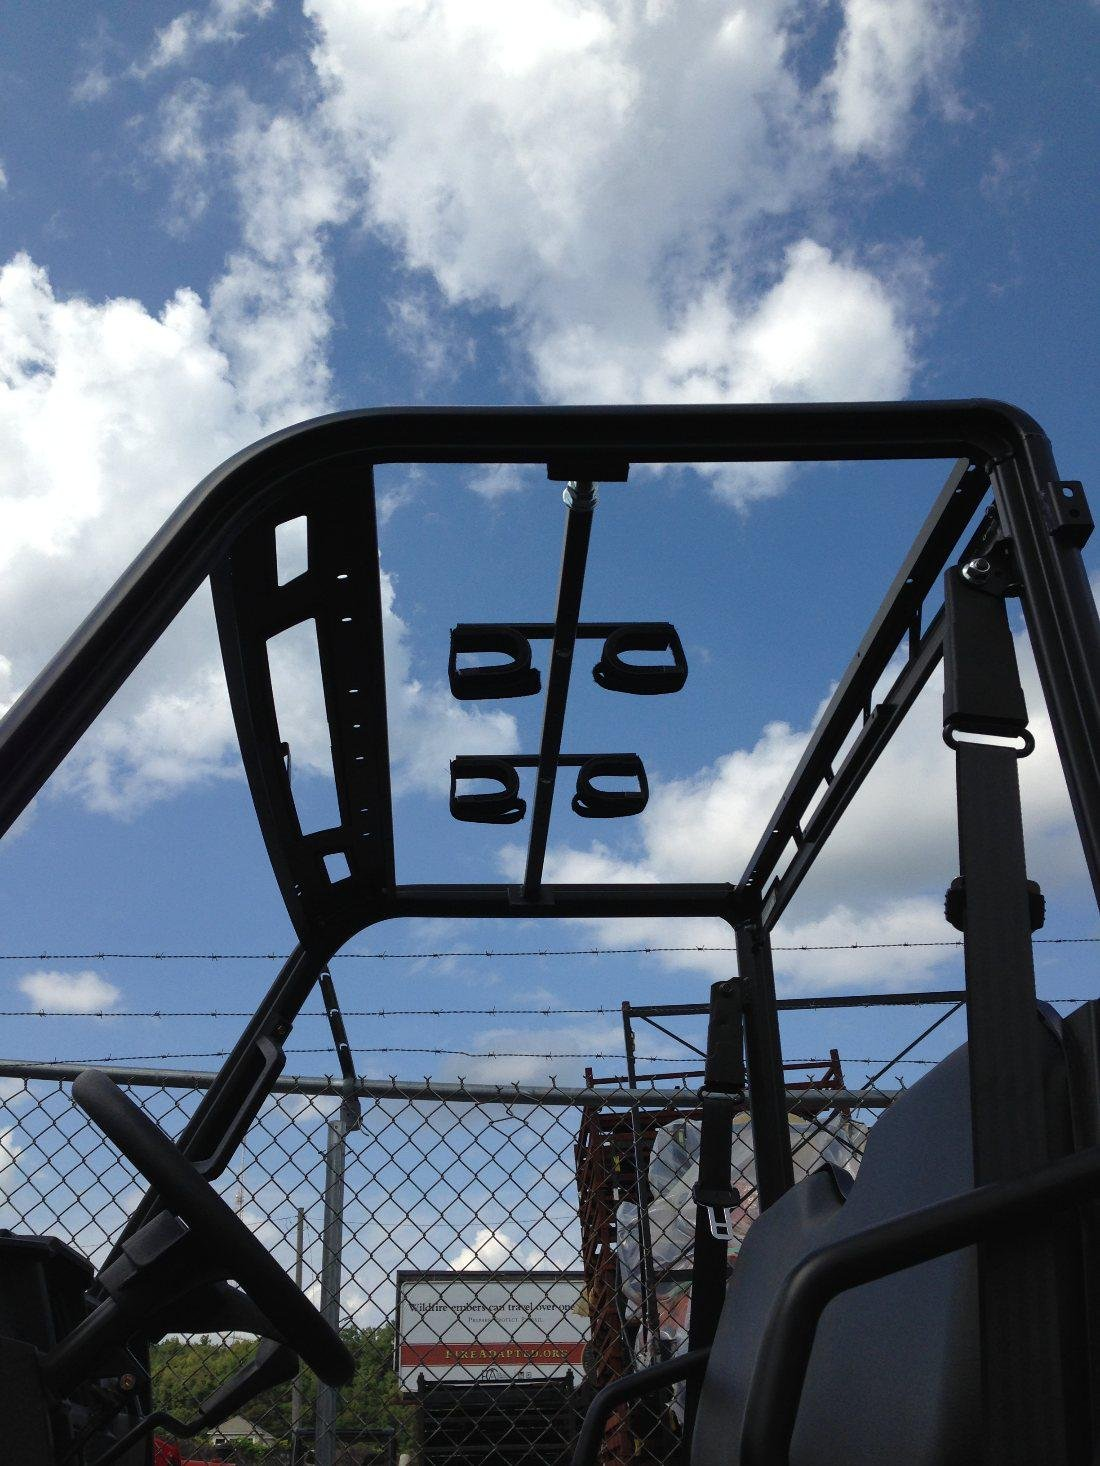 xp 900, 570 Full size, and 900 Crew Ranger- UTV Overhead Gun Rack by Great Day DAYQD8580GR by Great Day